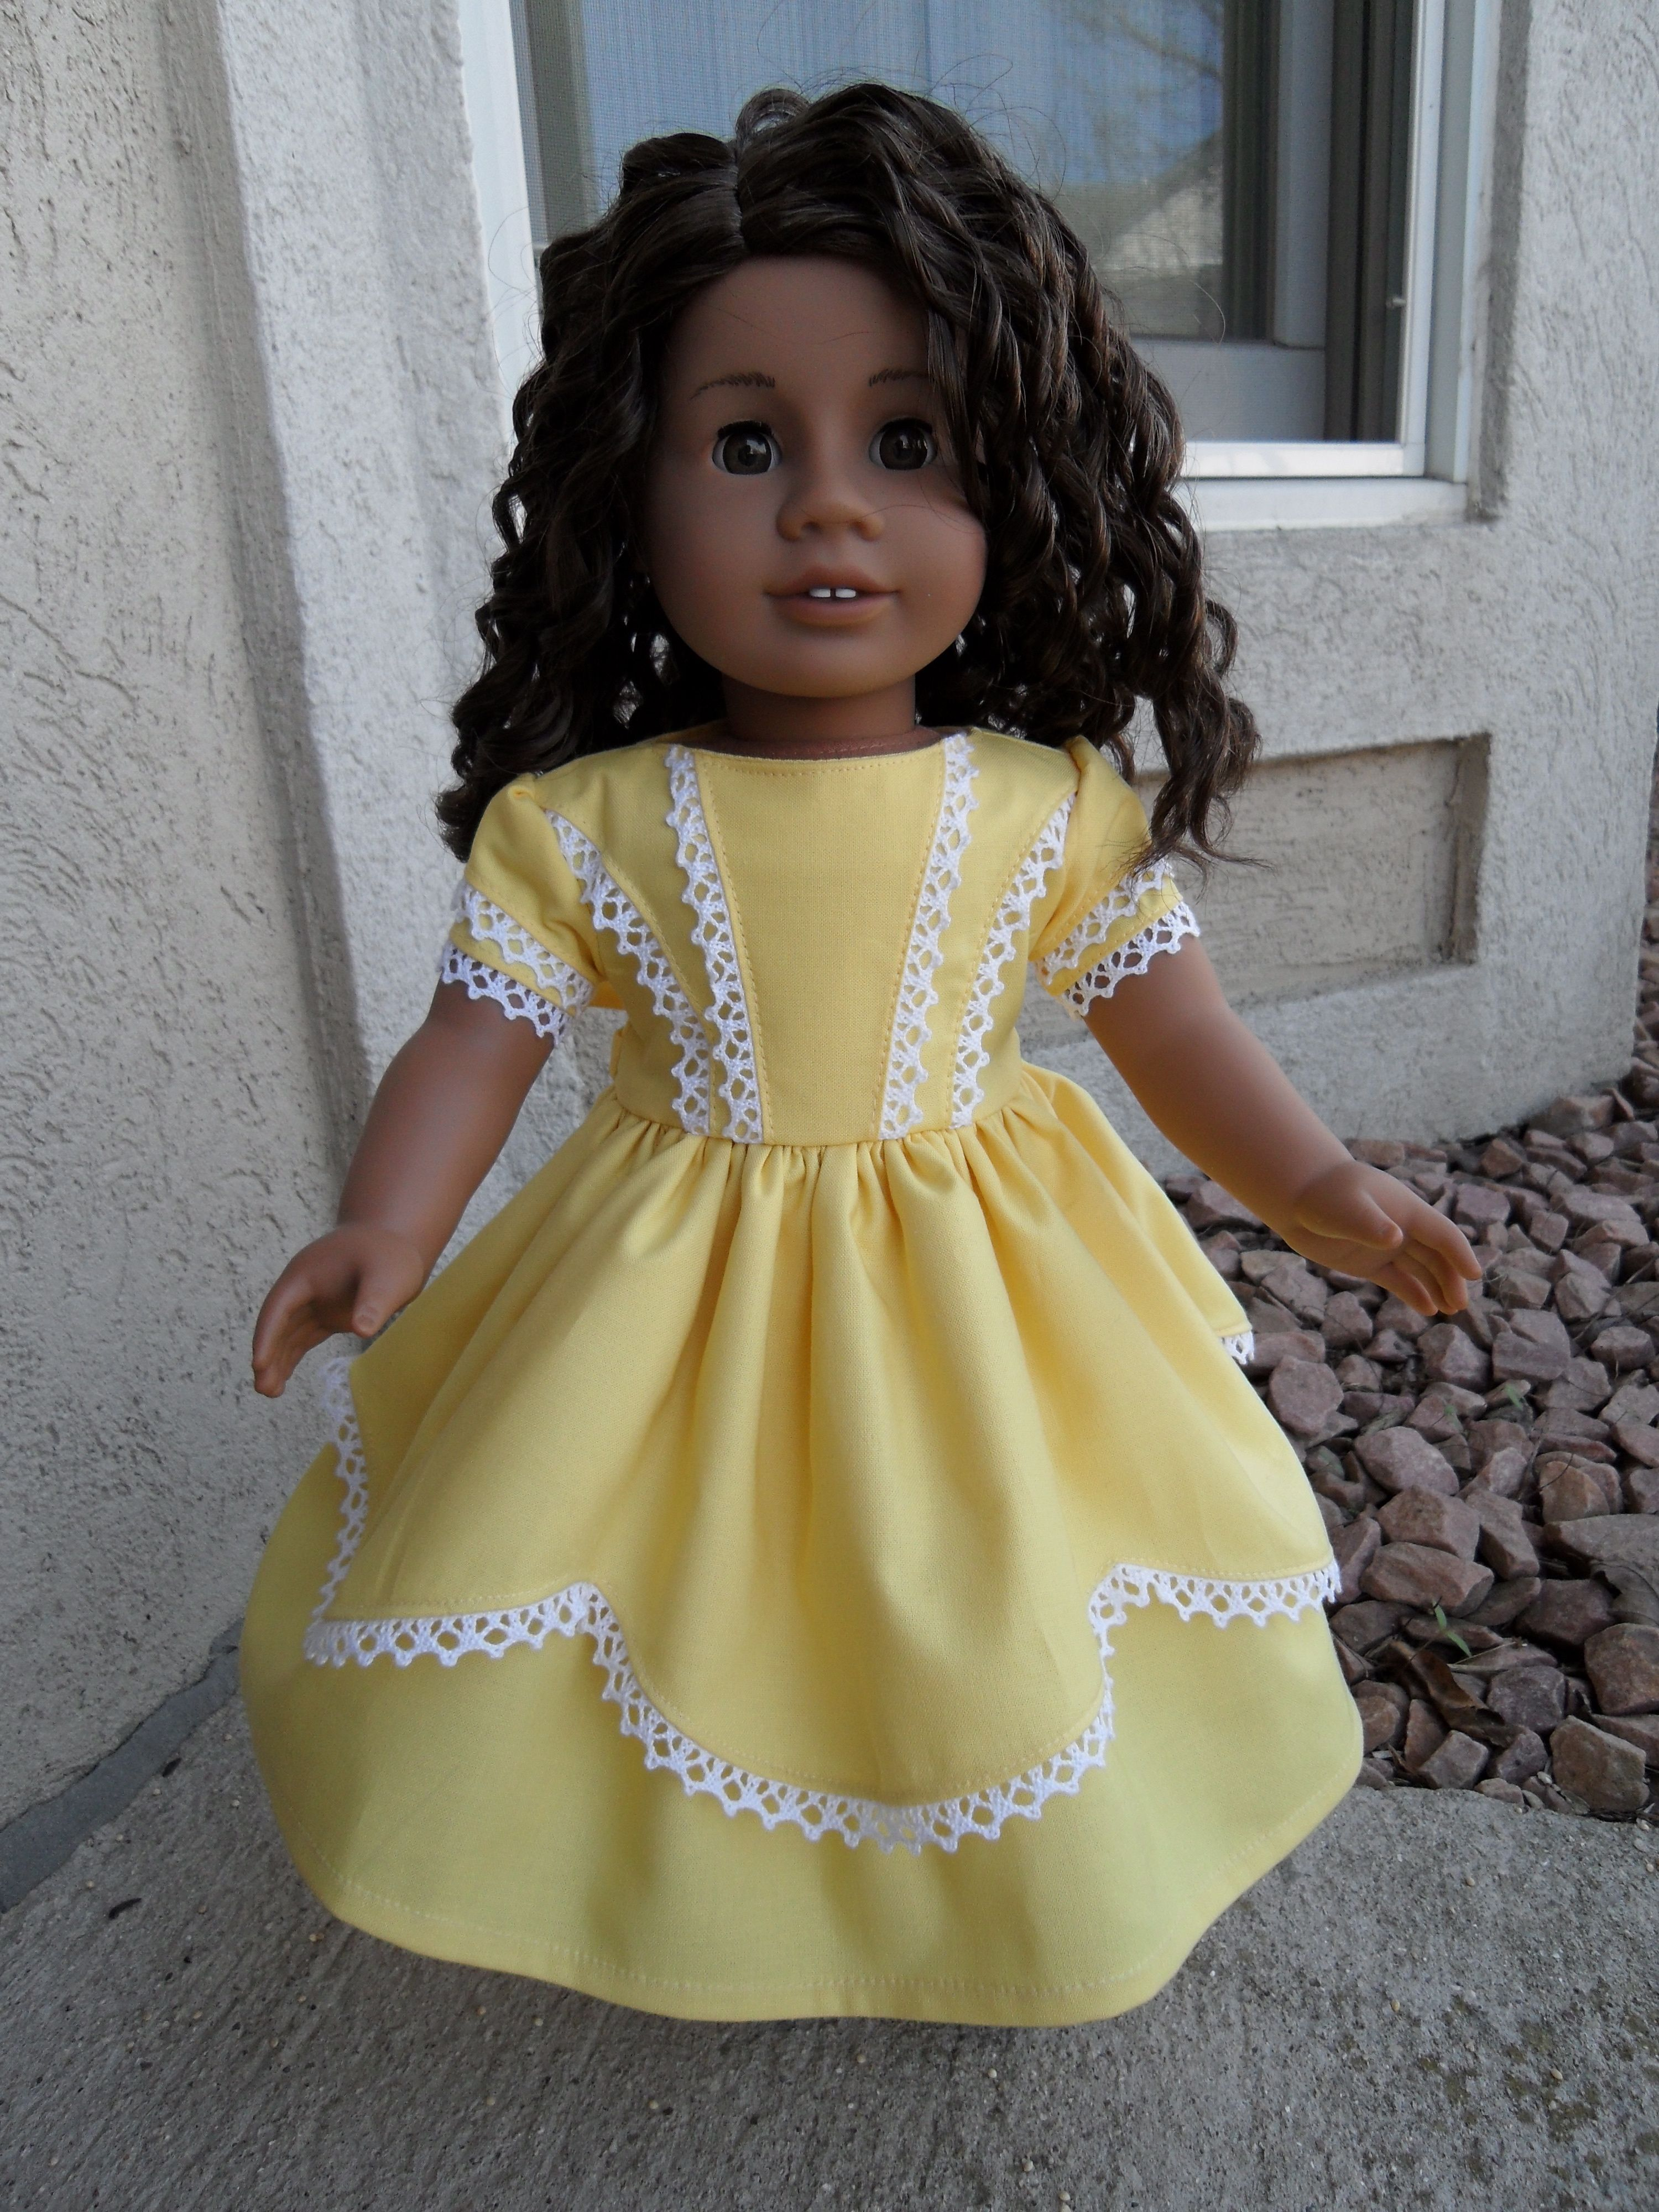 I used a  Keepers Dolly Duds pattern in soft Buttercup Yellow Kona Cotton    http://www.etsy.com/shop/kgabor19    https://www.facebook.com/pages/Katherines-Creations/129162887179594